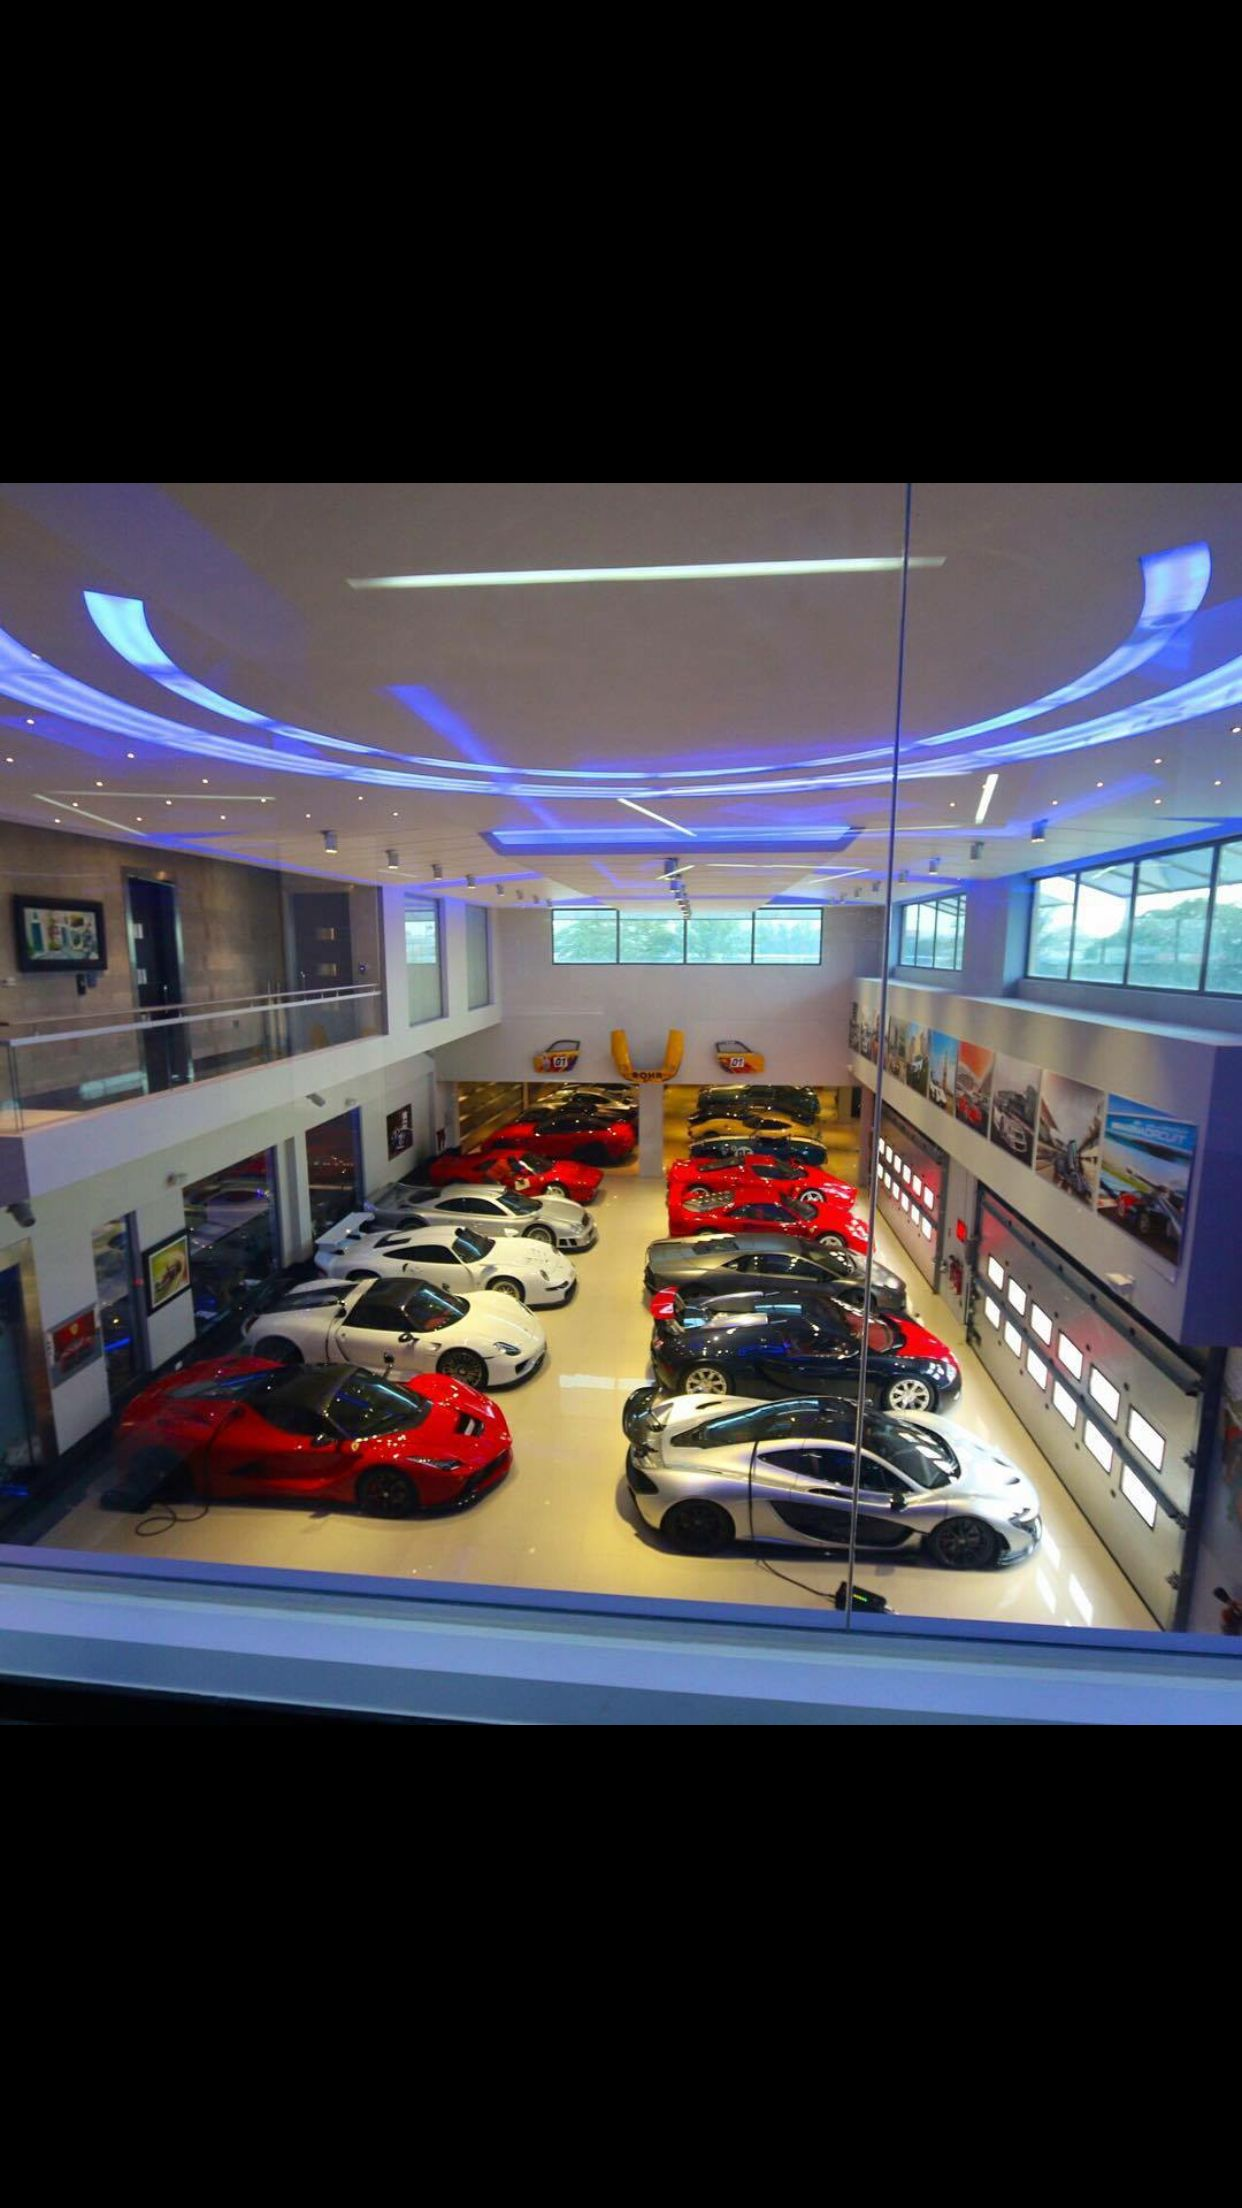 Epingle Par Vie De Reve Sur Villas De Reves Luxury Garage Garage